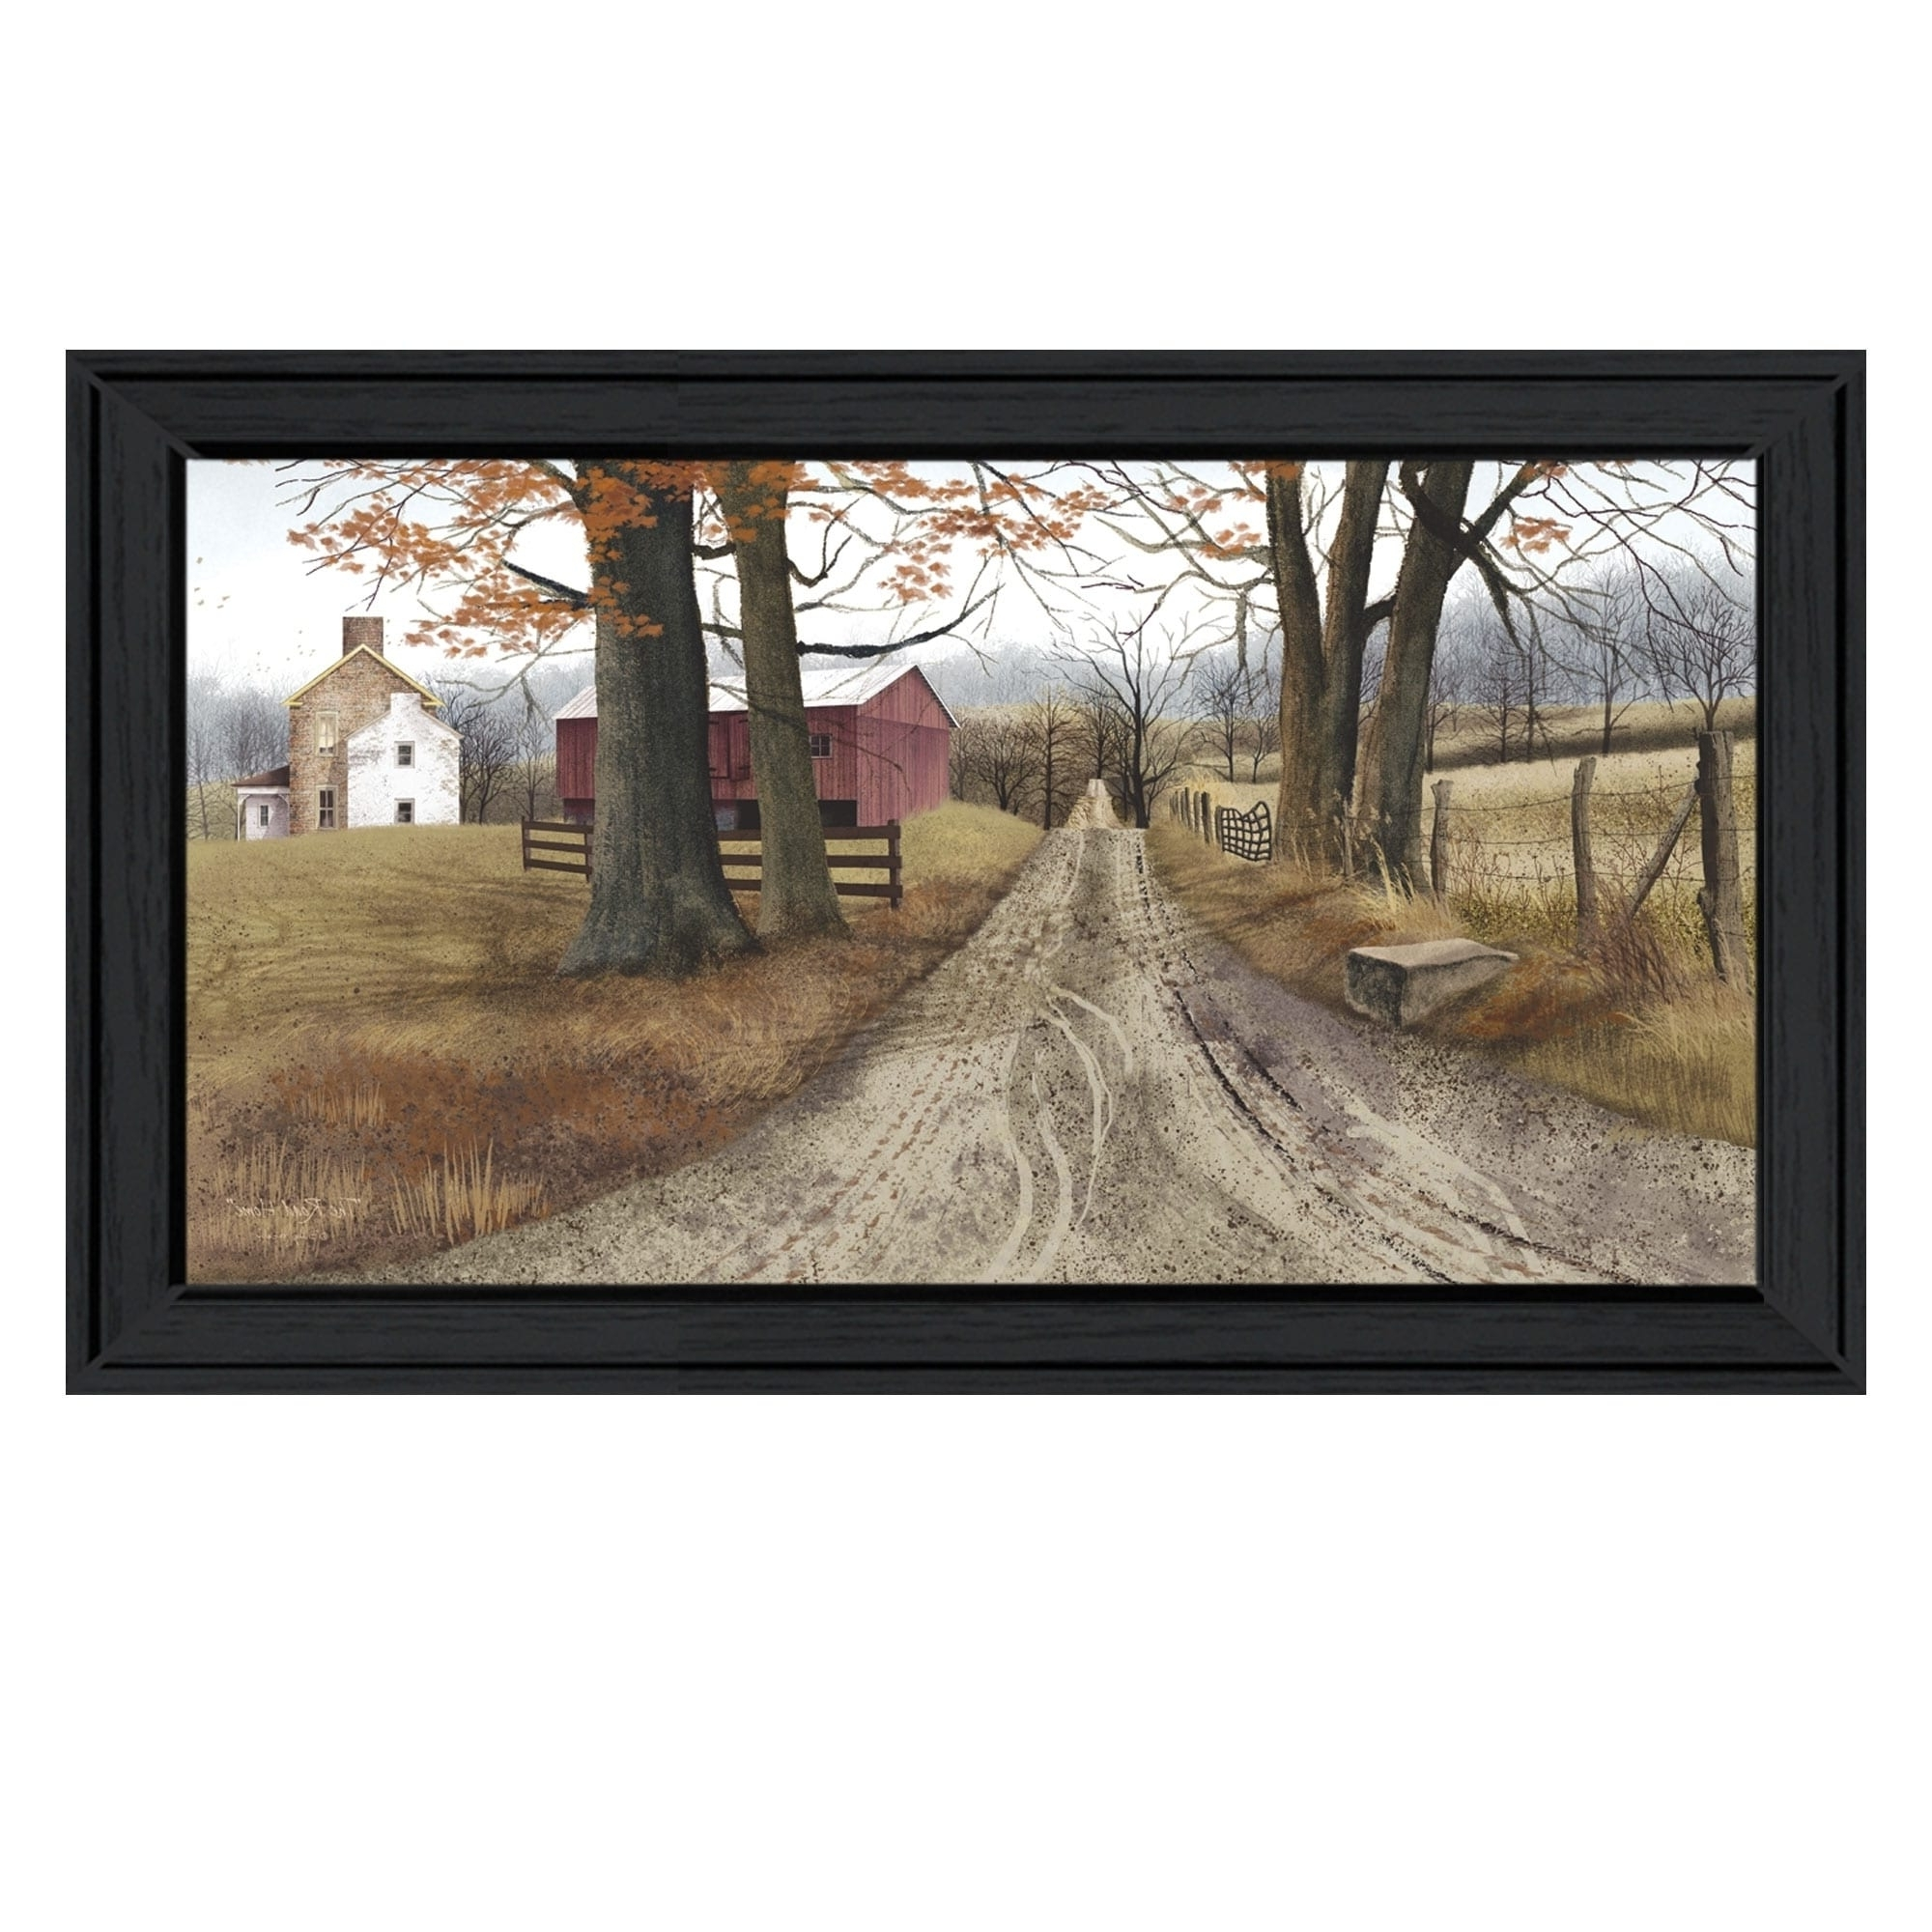 "The Road Home""billy Jacobs, Printed Wall Art, Ready To Hang Intended For Widely Used Billy Jacobs Framed Wall Art Prints (View 15 of 15)"